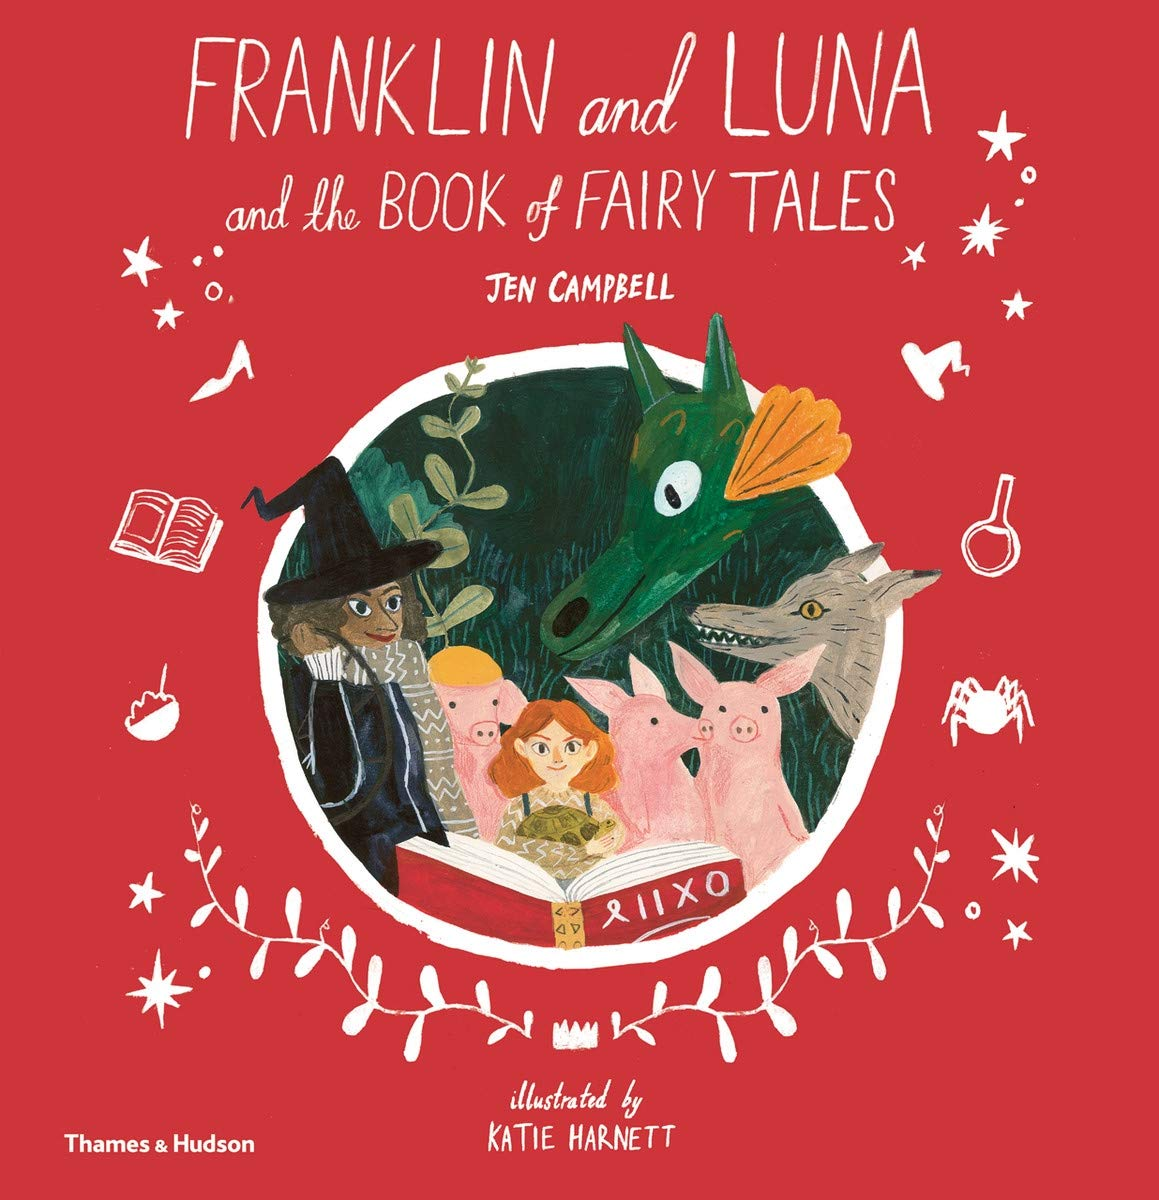 franklin and luna cover